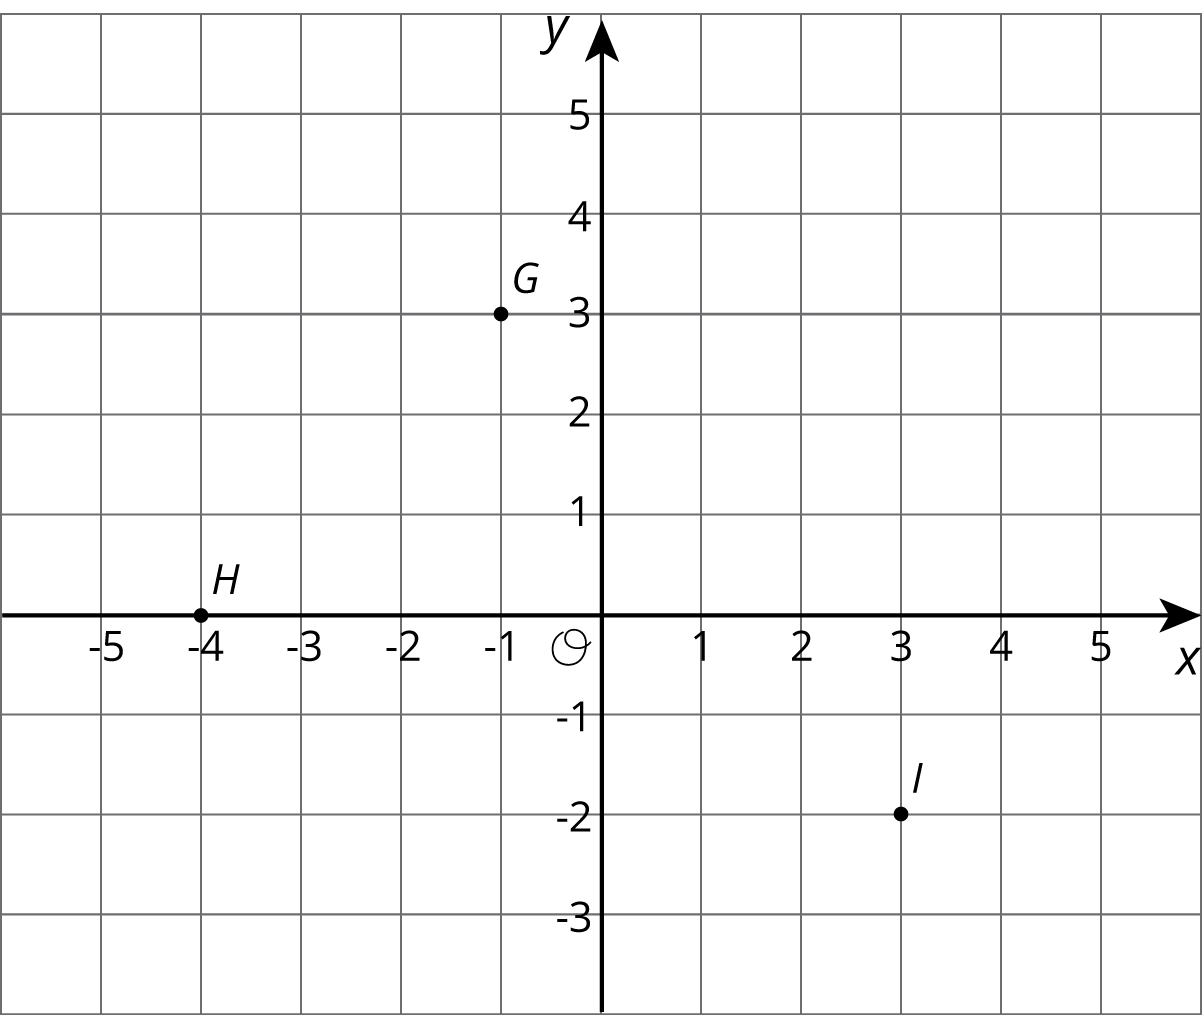 "Three points labeled, G, H, and I, are plotted on a coordinate grid with the origin labeled ""O."" Thex axis has the numbers negative 5 through 5 indicated. The y axis has the numbers negative 3 through 5 indicated. Point G is located at negative 1 comma 3. Point H is located at negative 4 comma 0. Point I is located at 3 comma negative 2."